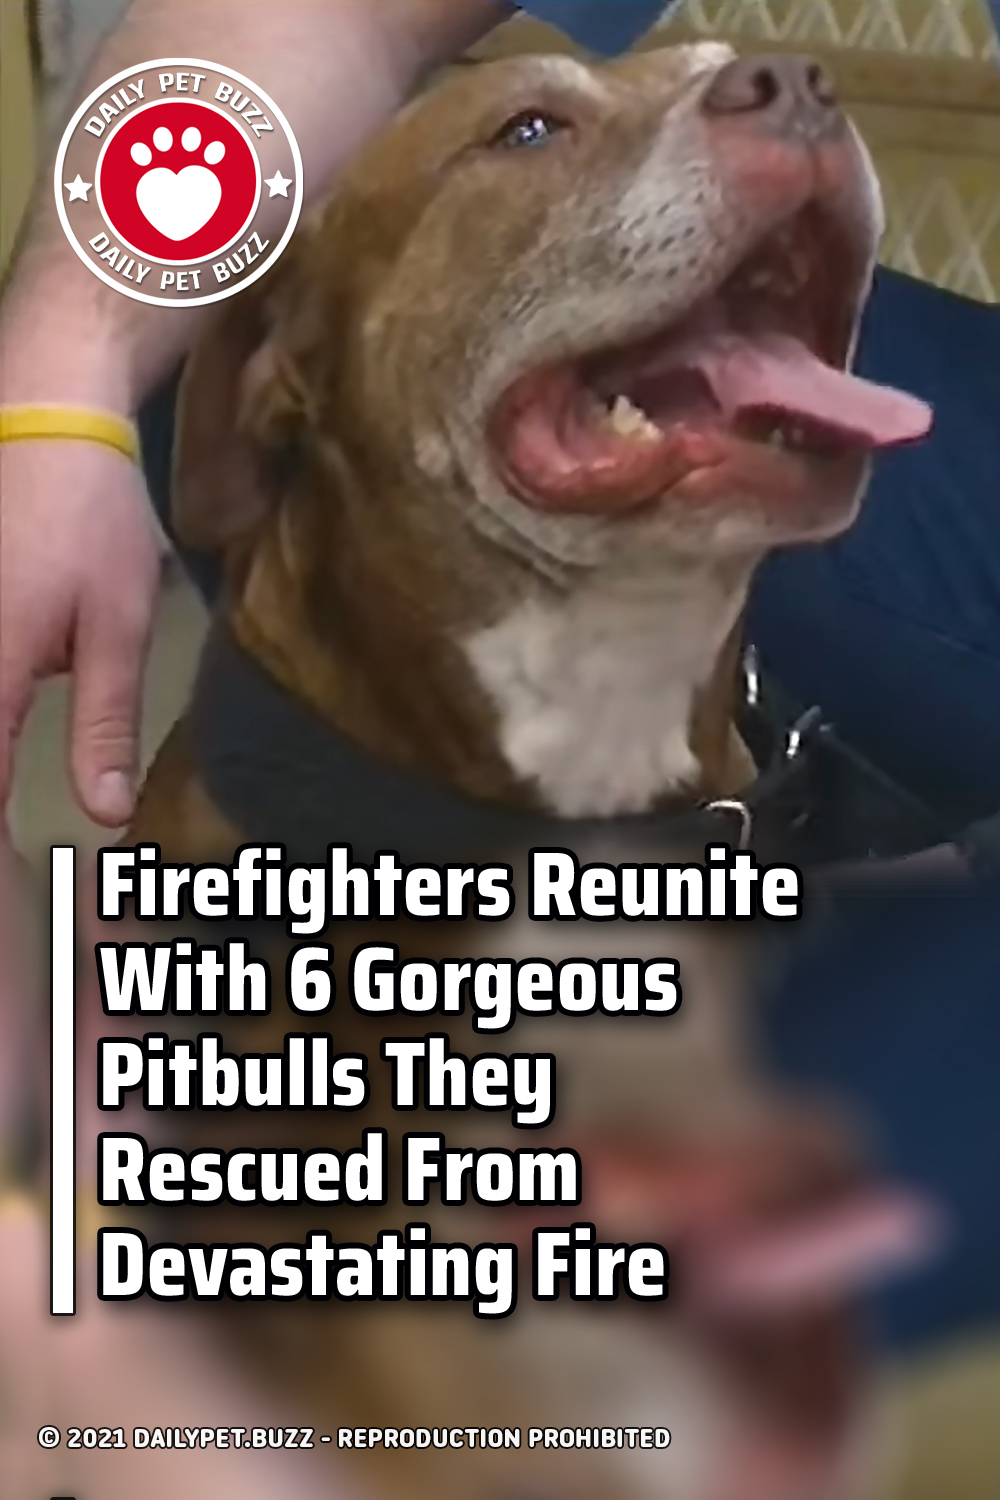 Firefighters Reunite With 6 Gorgeous Pitbulls They Rescued From Devastating Fire